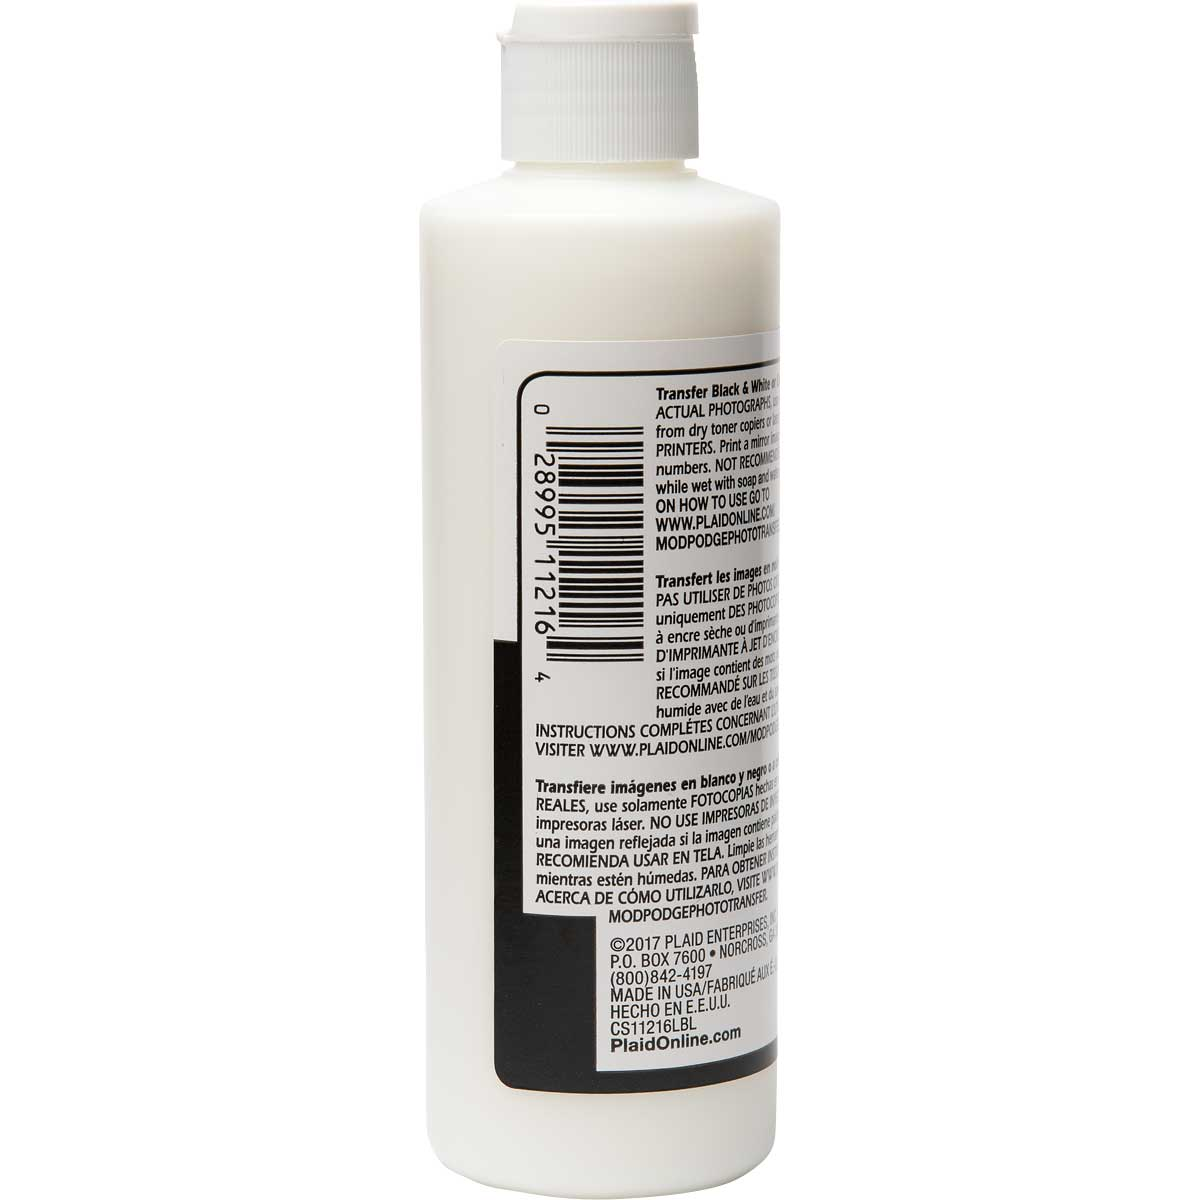 Mod Podge ® Image Transfer Medium Clear, 8 oz.